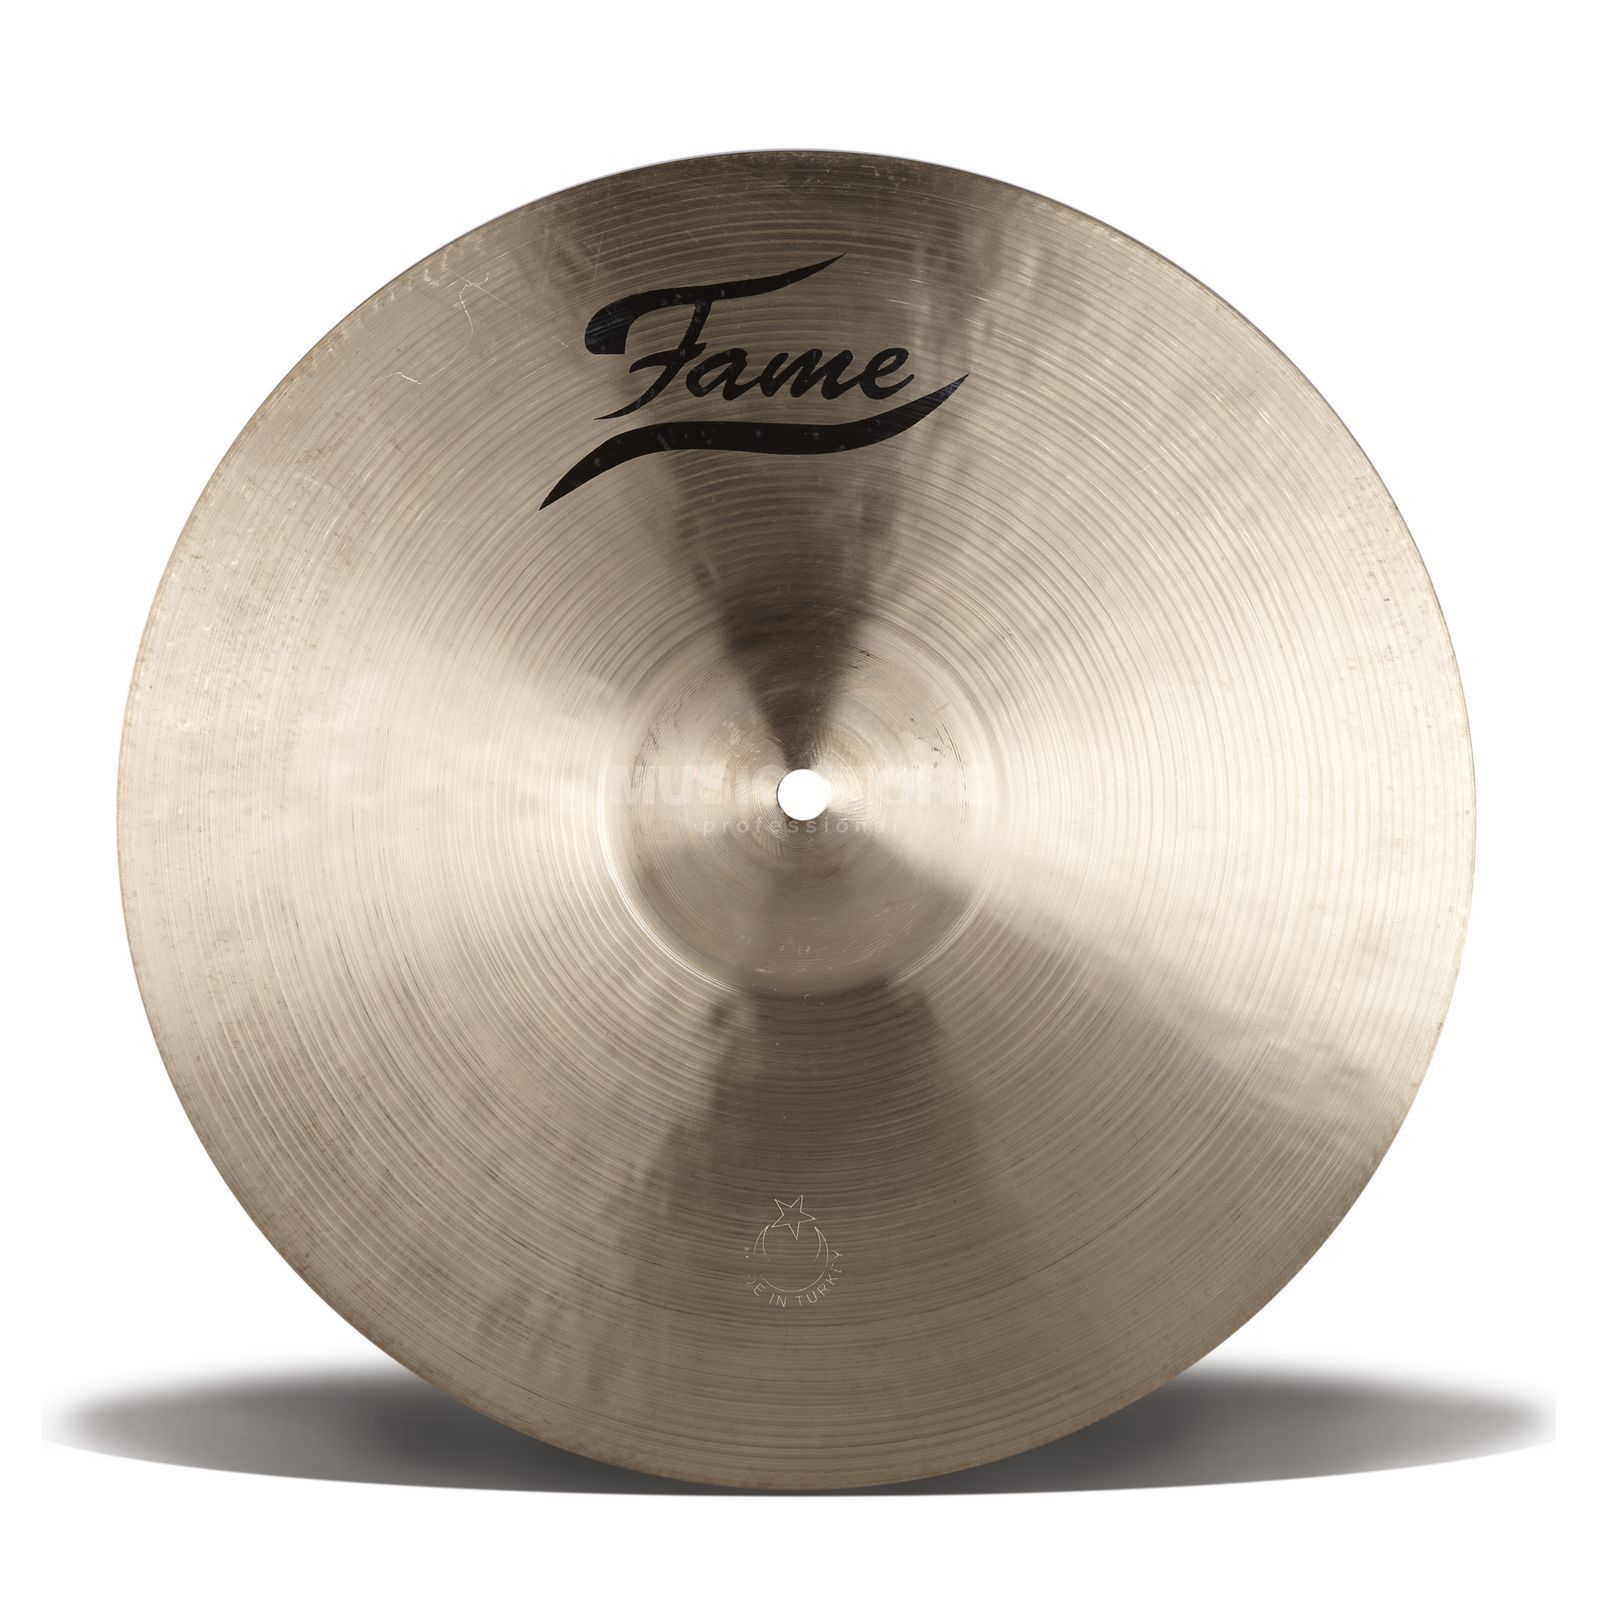 "Fame Masters B20 Thin HiHat 14"", Natural Finish Produktbild"